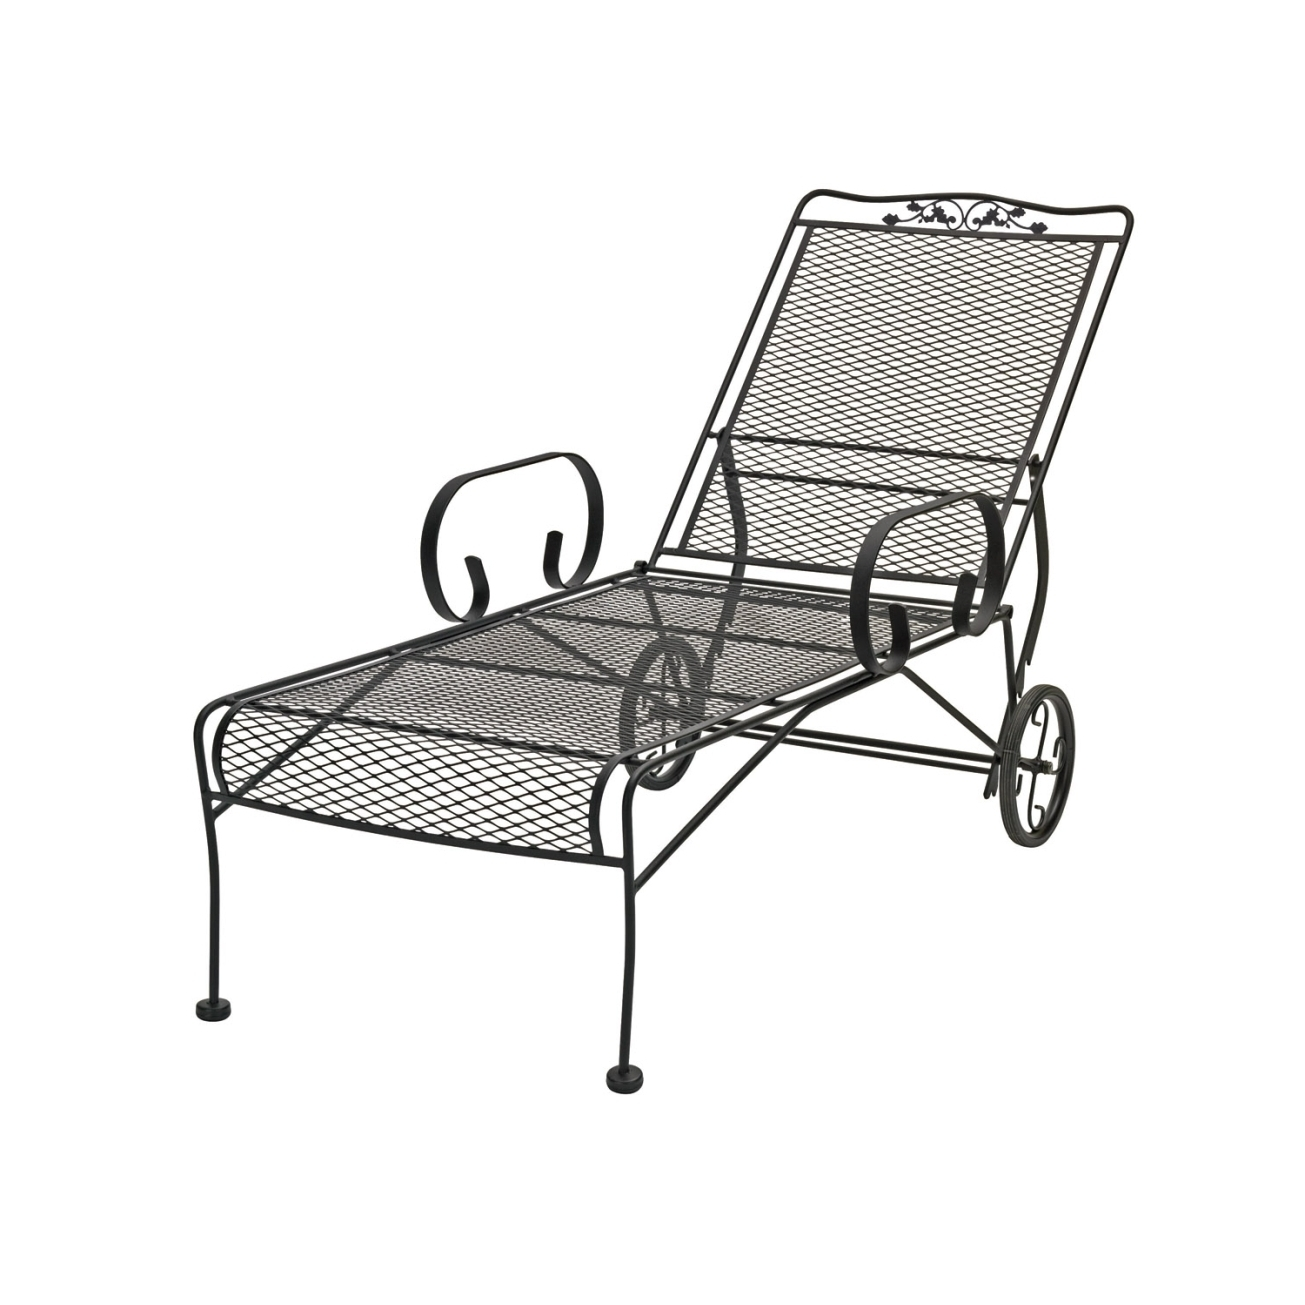 Lovable Patio Chaise Lounge Chairs Outdoor Lounge Chairs Outdoor With 2018 Garden Chaise Lounge Chairs (View 9 of 15)